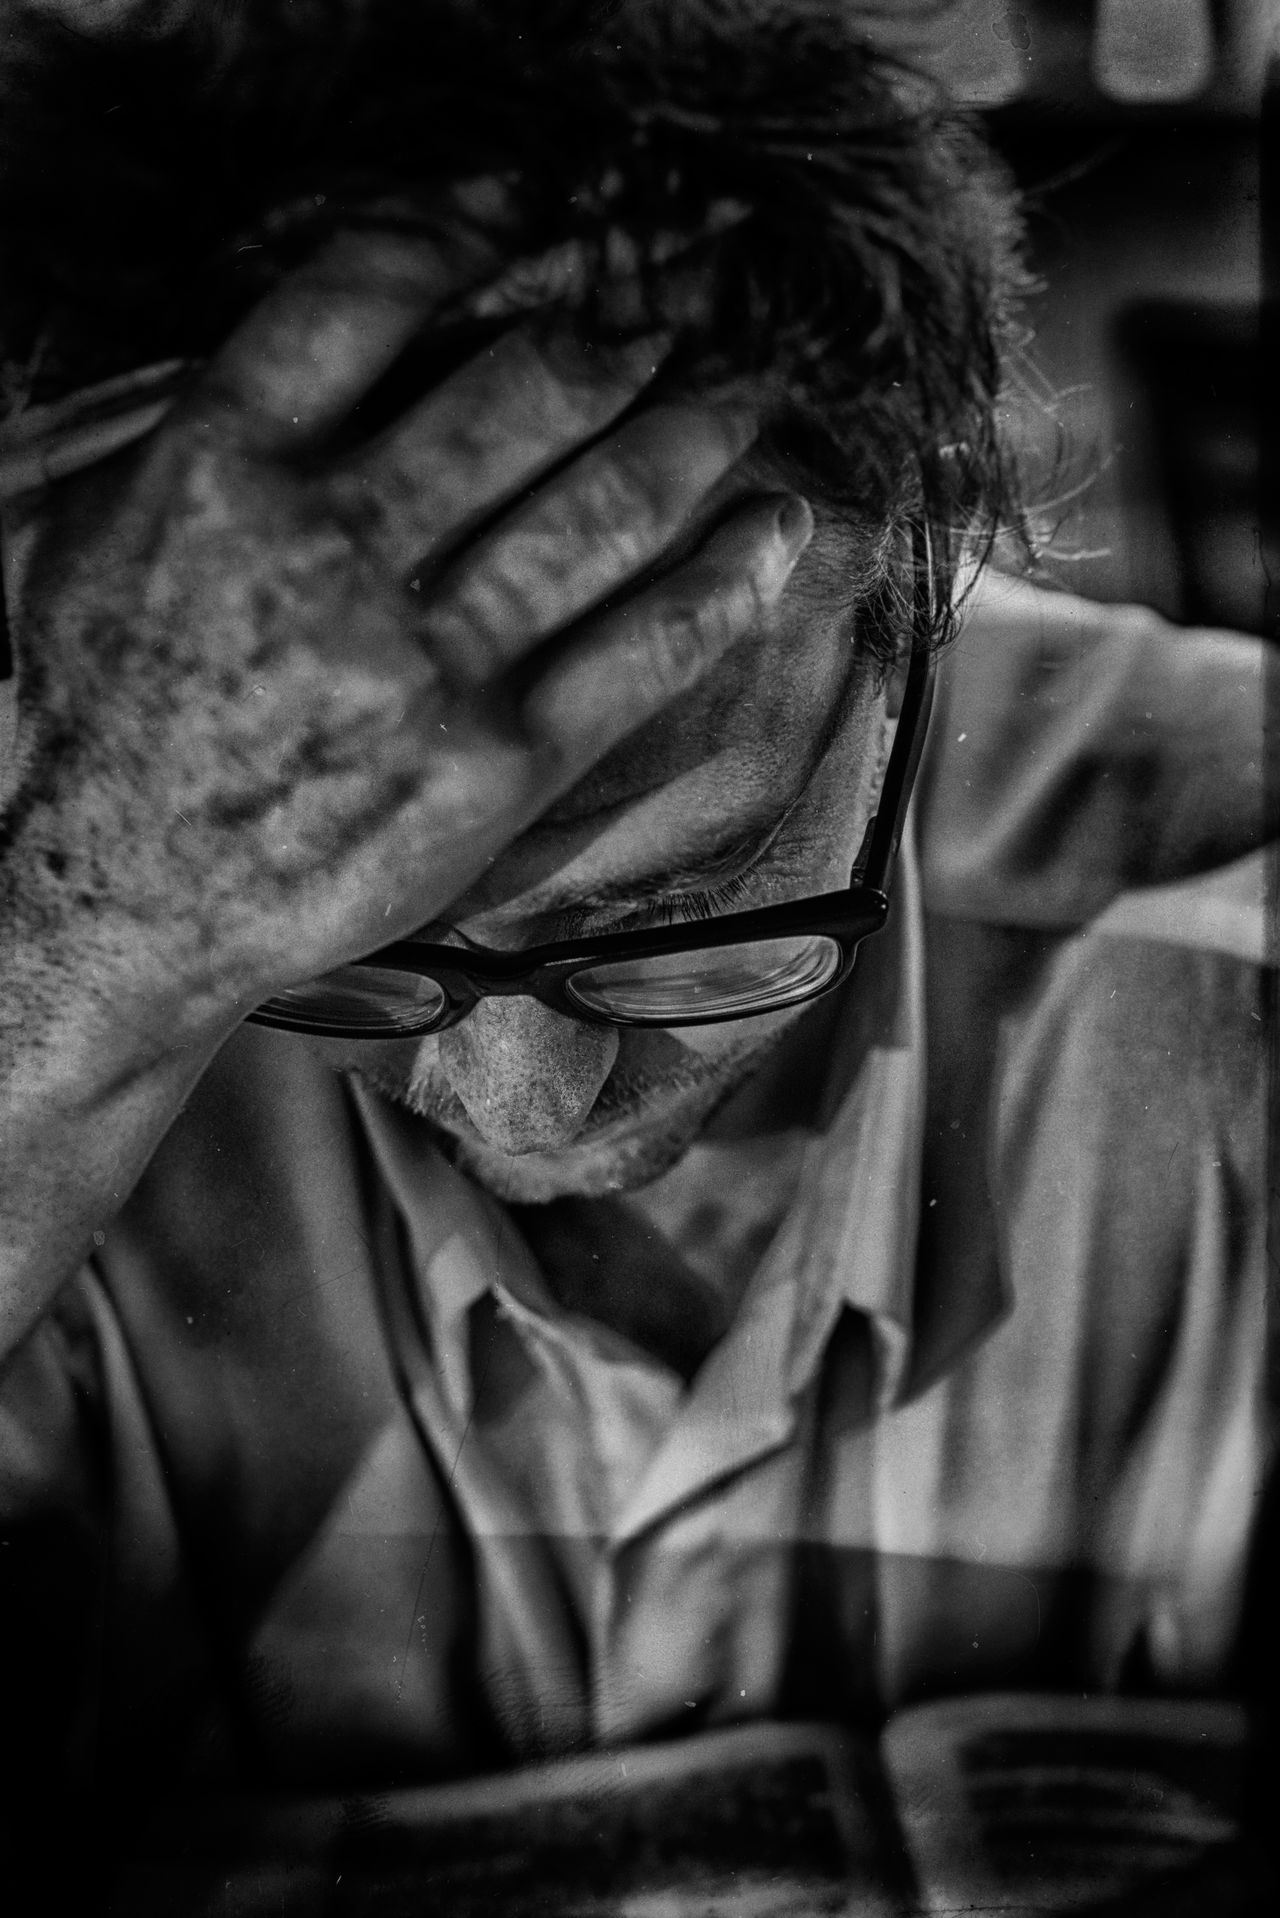 B&W Portrait Blackandwhite Black And White Black & White Portrait Depressed Depression Guy Man Popular Photos EyeEm Best Shots Niklasskur Telling Stories Differently Showing Imperfection Portrait Of A Man  Portrait Photography Faces Of EyeEm Dyslexia Dyslexic  Dyslectic Dyslect